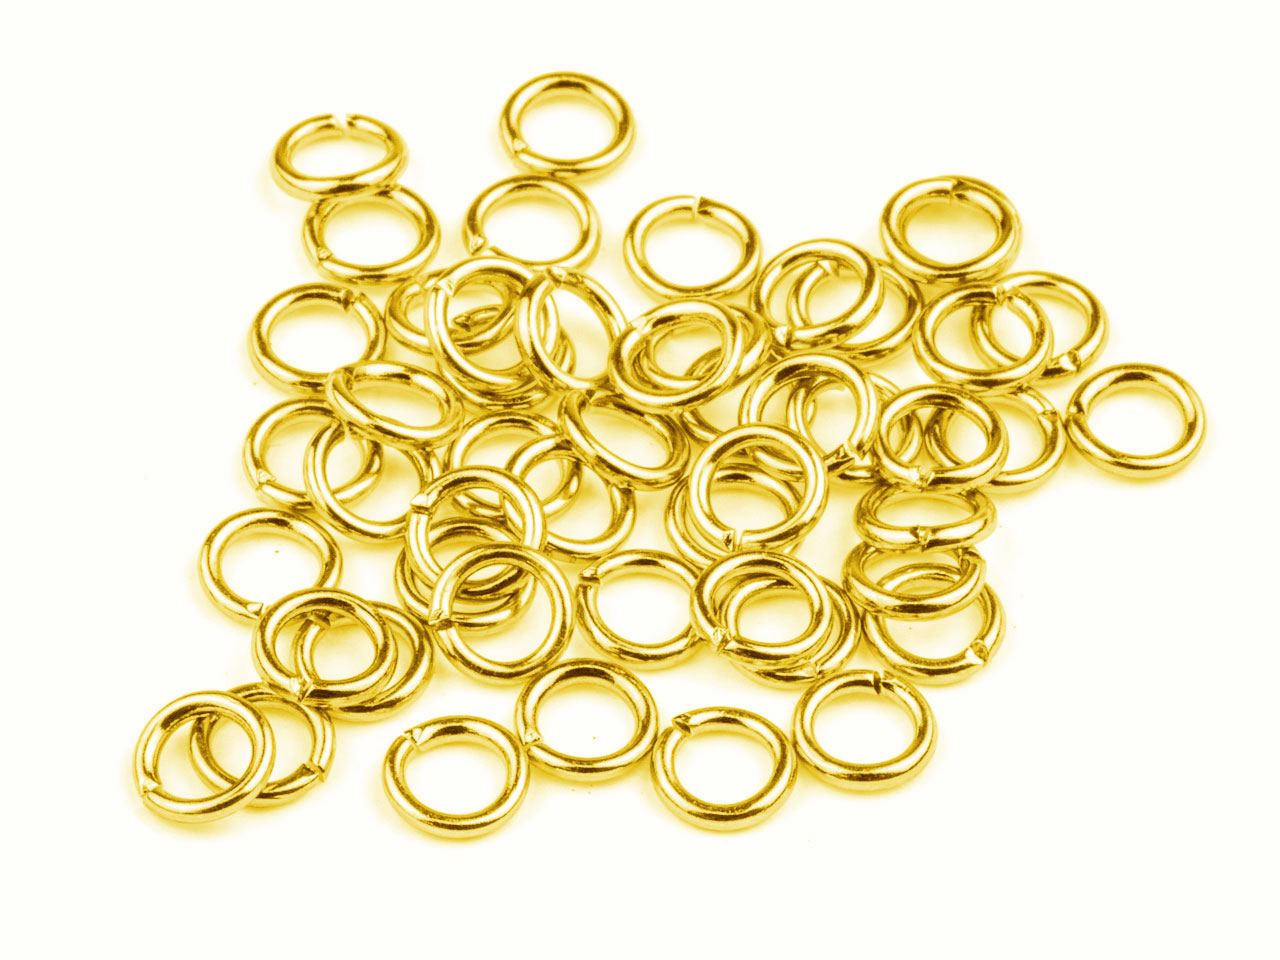 Gold Plated Jump Ring Round 5mm    Pack of 100, Gauge 0.95mm